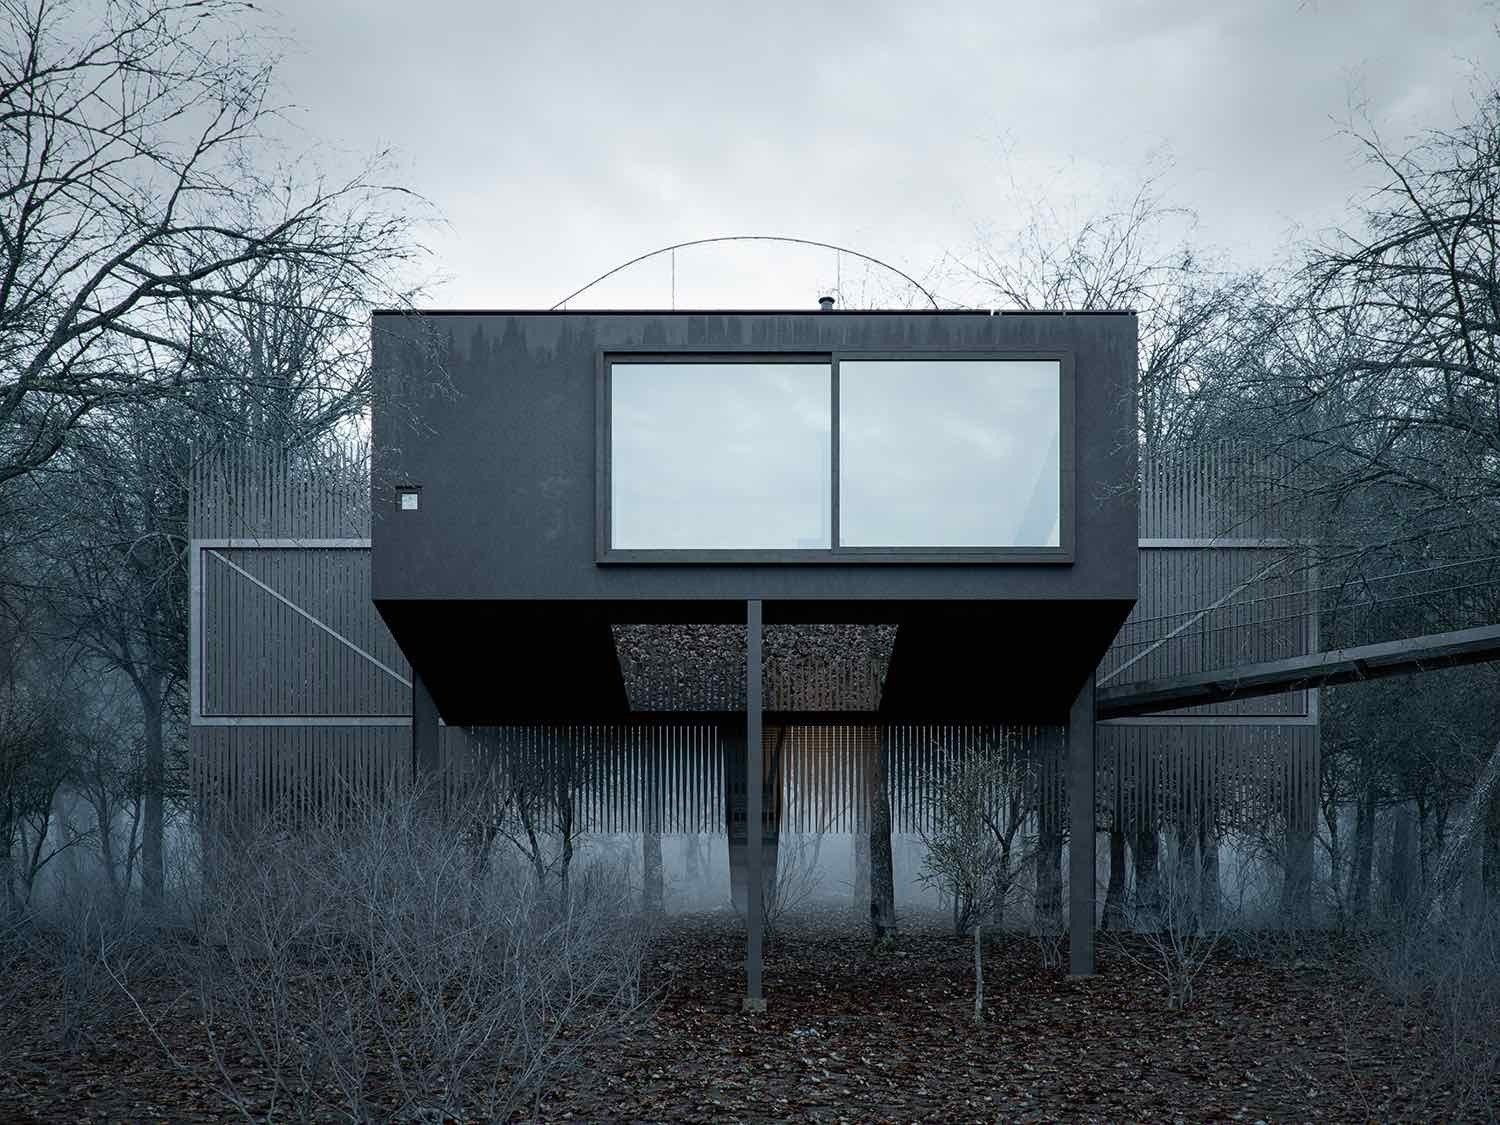 Photo 2 of 6 in Mask House by WOJR